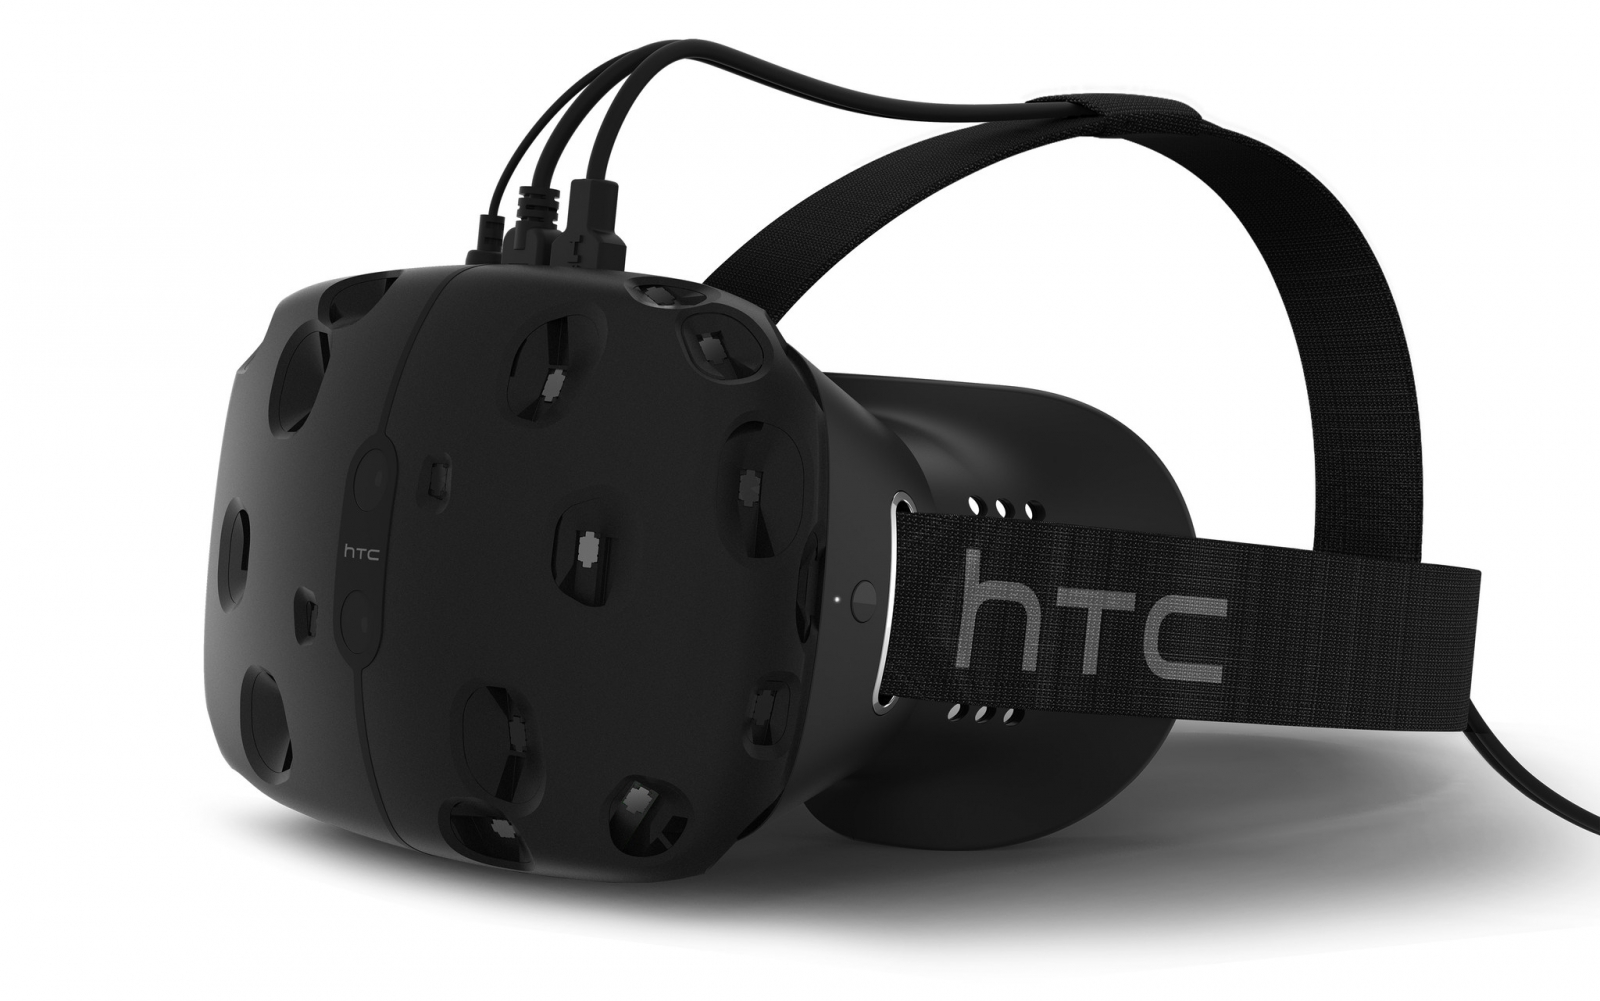 HTC Vive: What you need to know about the SteamVR virtual reality marvel